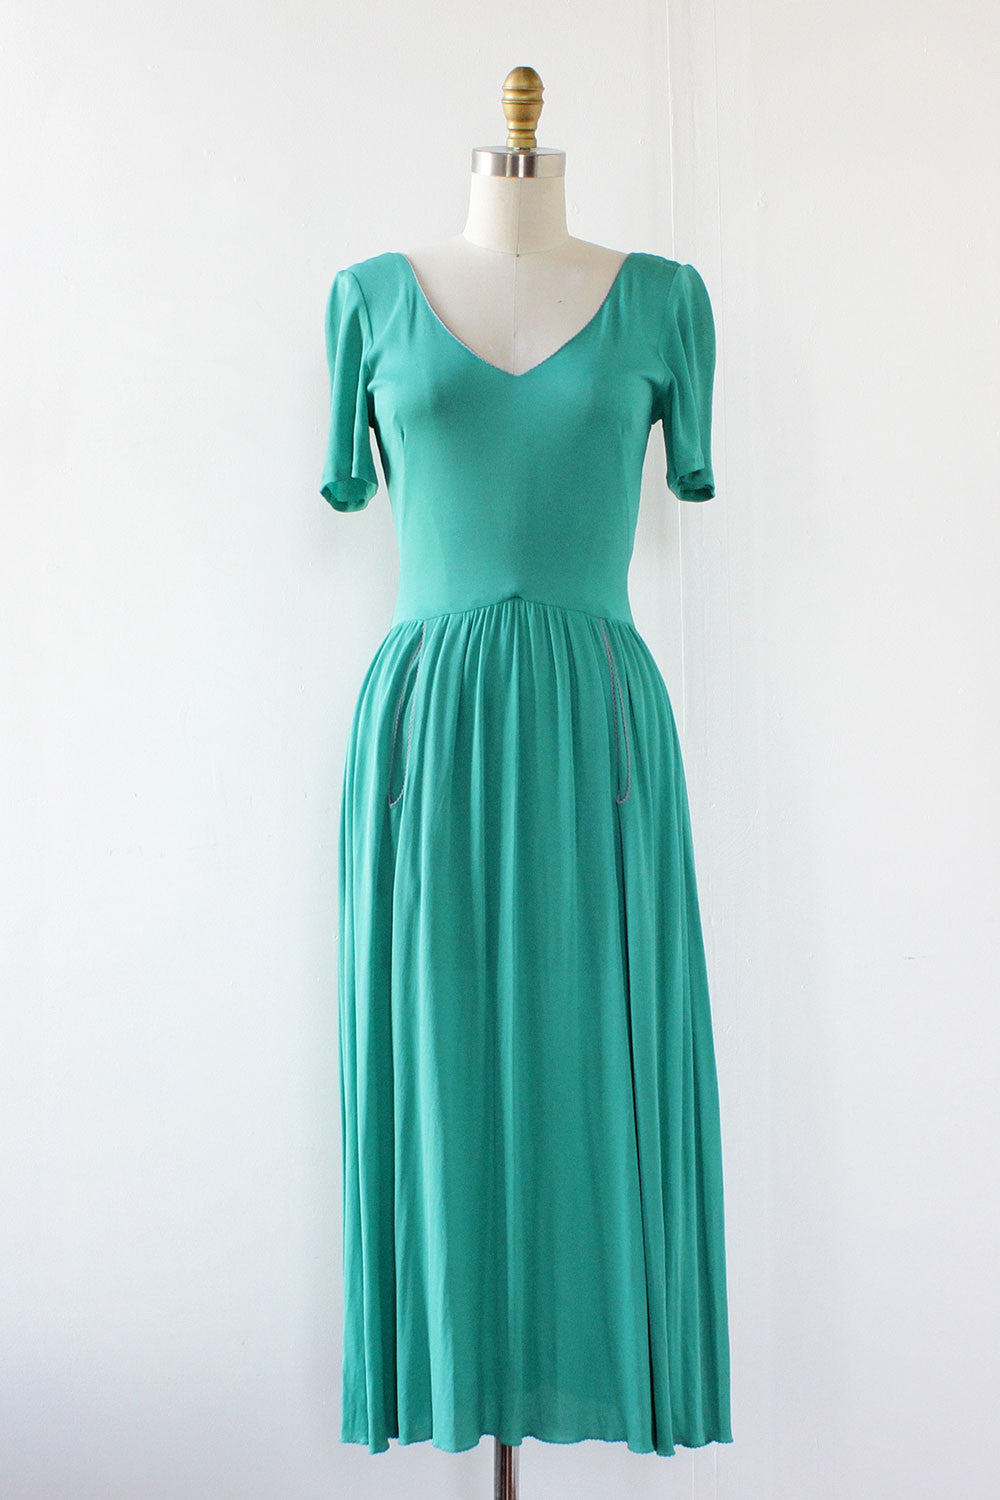 Seafoam Drape Dress XS/S